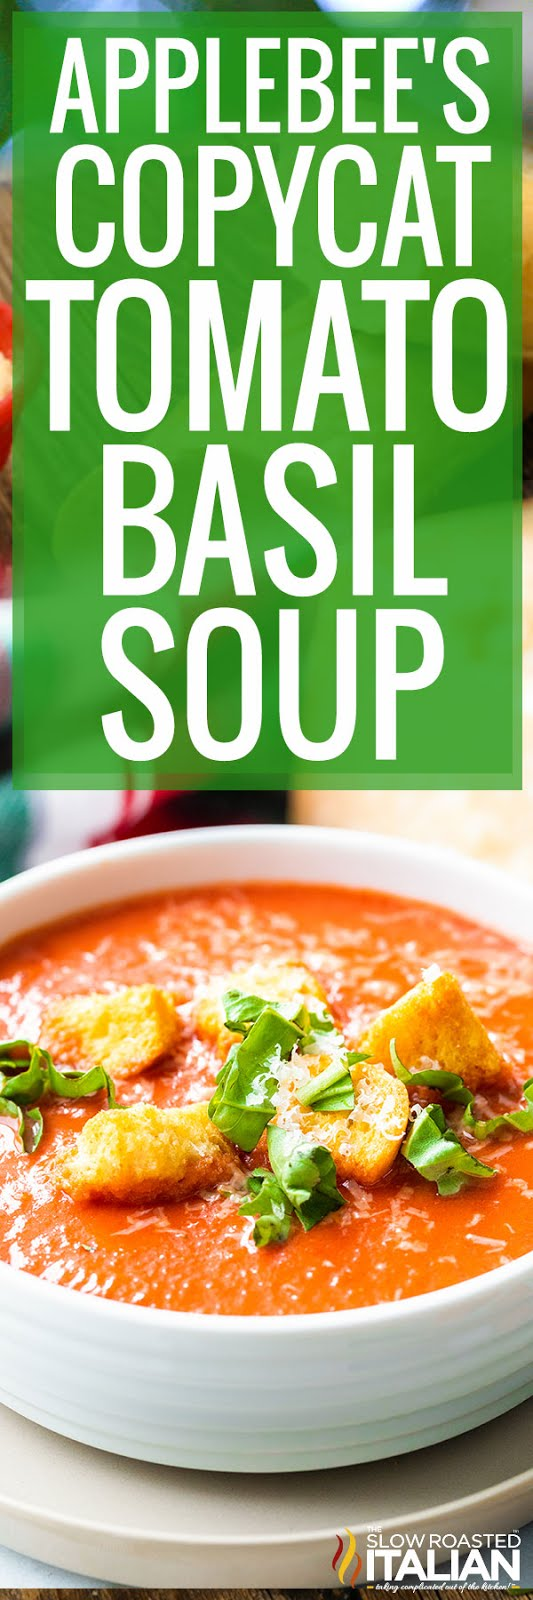 titled photo collage shows Applebee's copycat version of tomato basil soup recipe in bowls